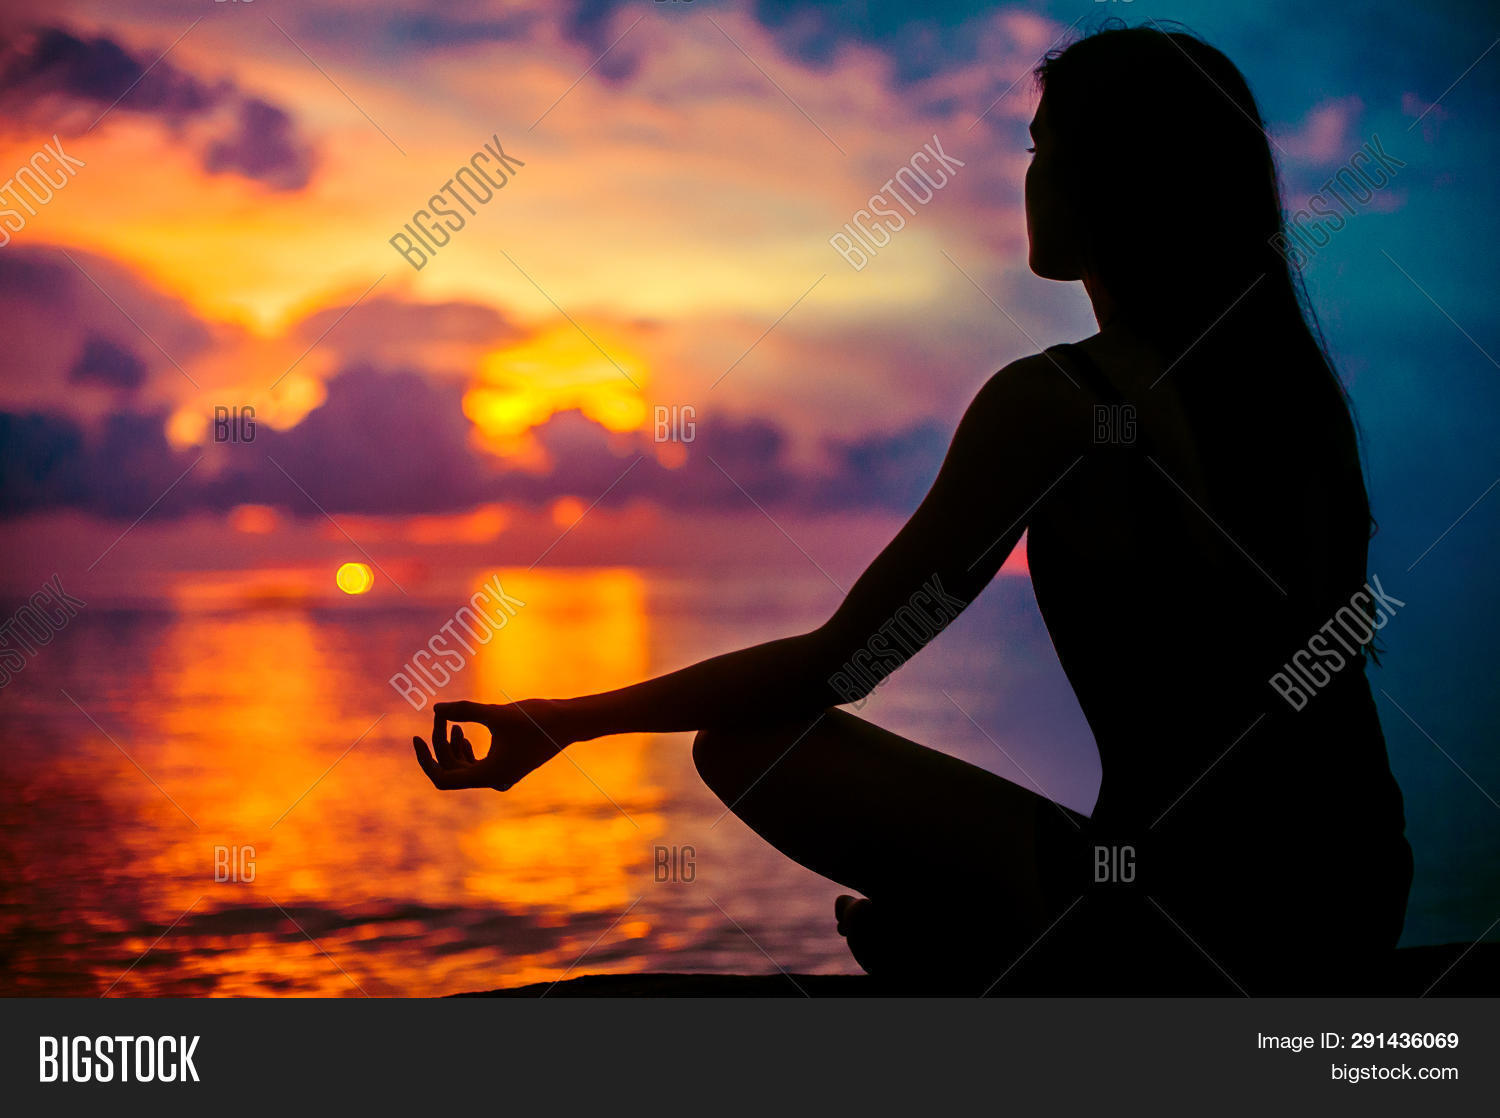 balance,beach,body,calm,contemplation,doing,energy,exercise,exotic,female,fit,fitness,freedom,gymnastics,harmony,healthy,instructor,lifestyle,lotus,meditating,meditation,ocean,paradise,peace,peaceful,pose,posing,practicing,recreation,relax,relaxation,sea,silhouette,sky,soul,spirit,spiritual,stretching,sunrise,sunset,training,tranquil,tropical,vitality,water,wellbeing,wellness,woman,yoga,zen